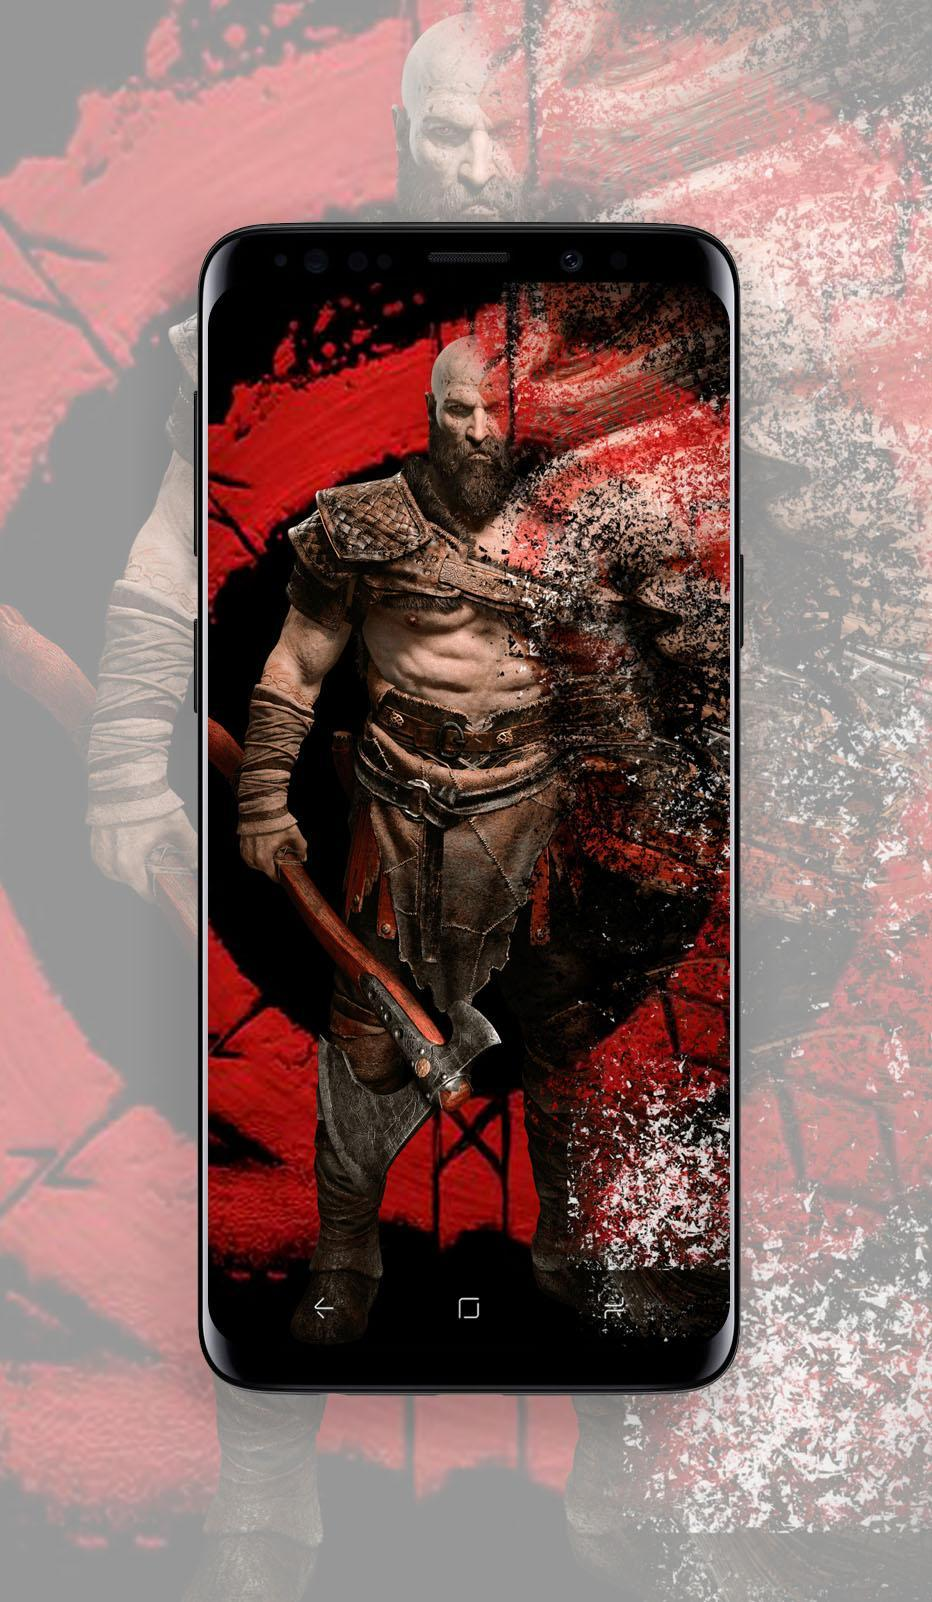 God Of War Wallpaper Hd 4k For Android Apk Download